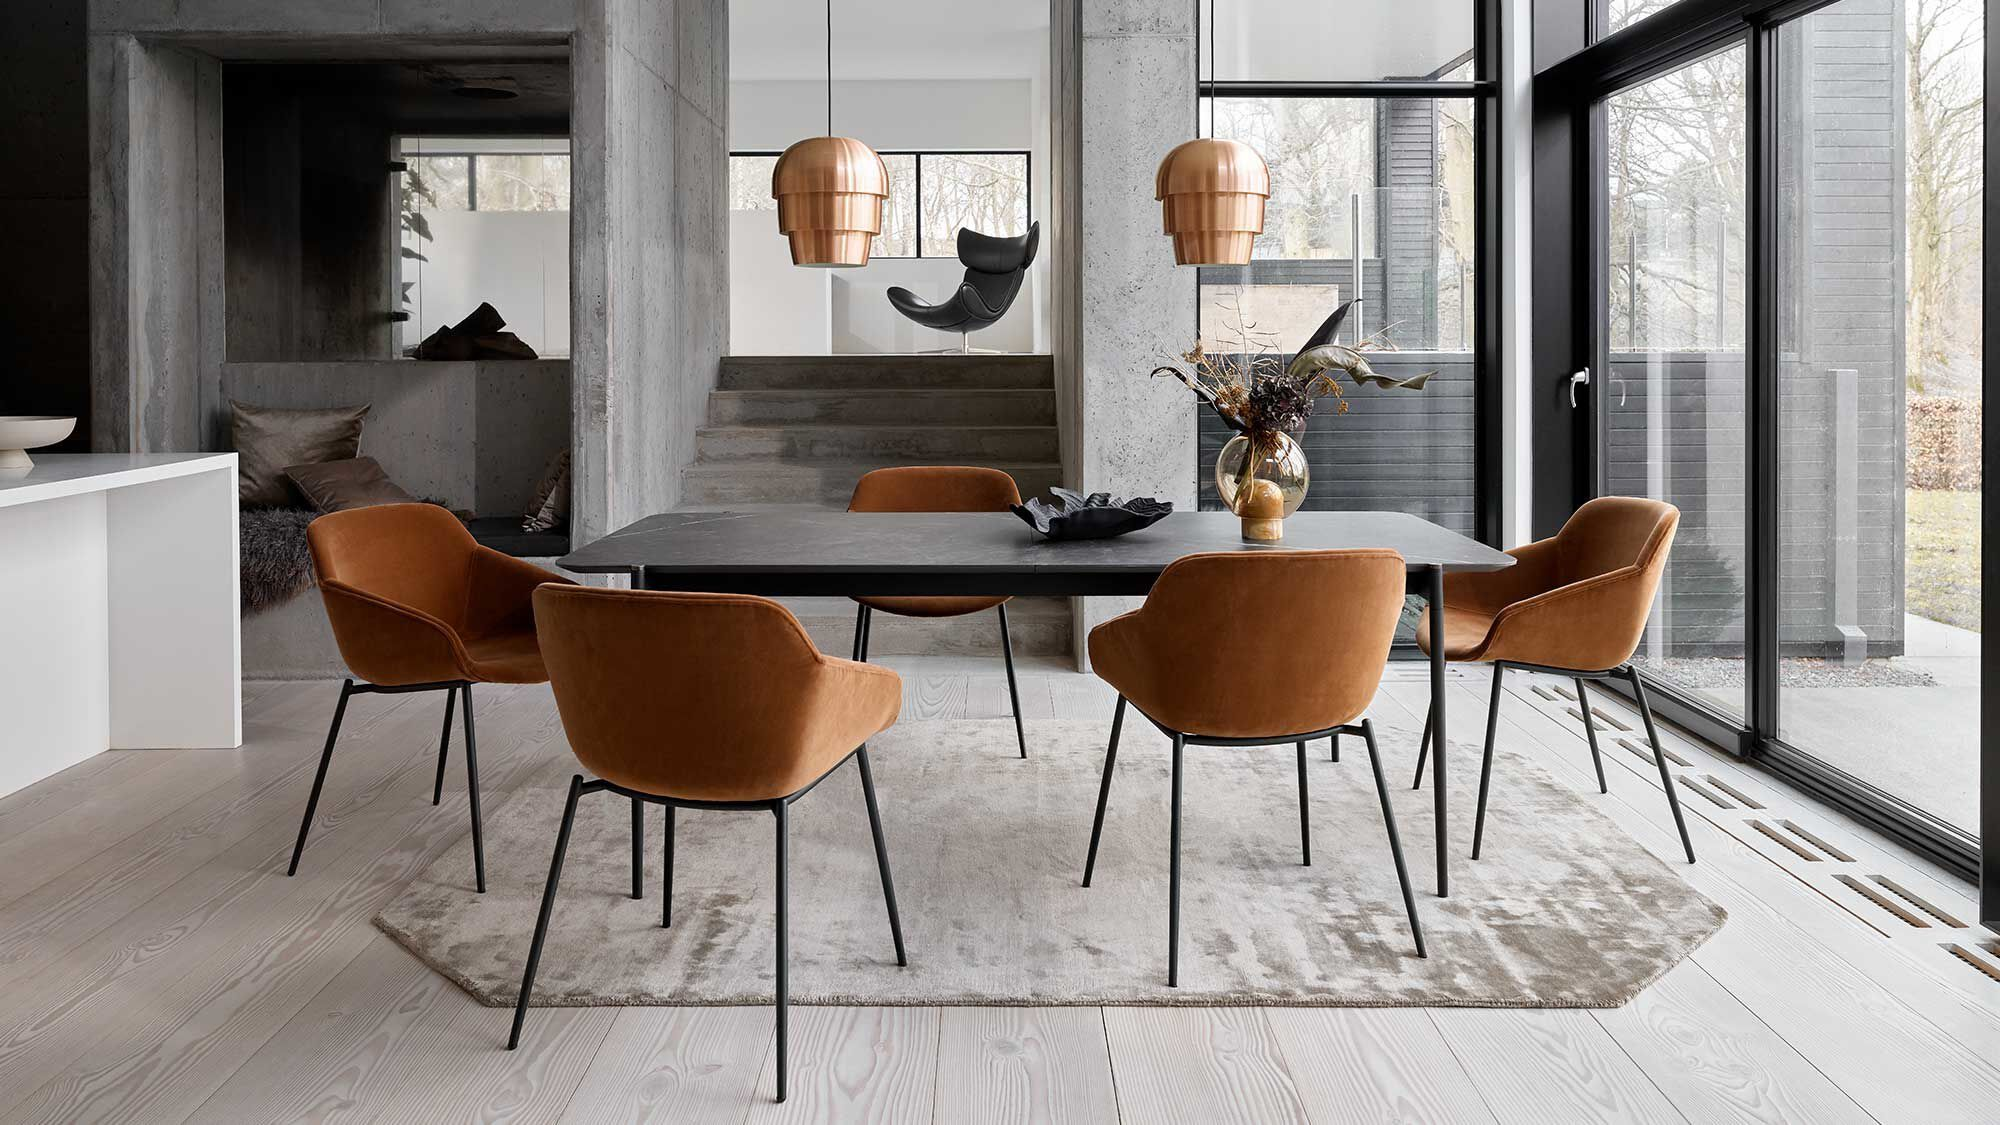 Dining chairs - Vienna chair